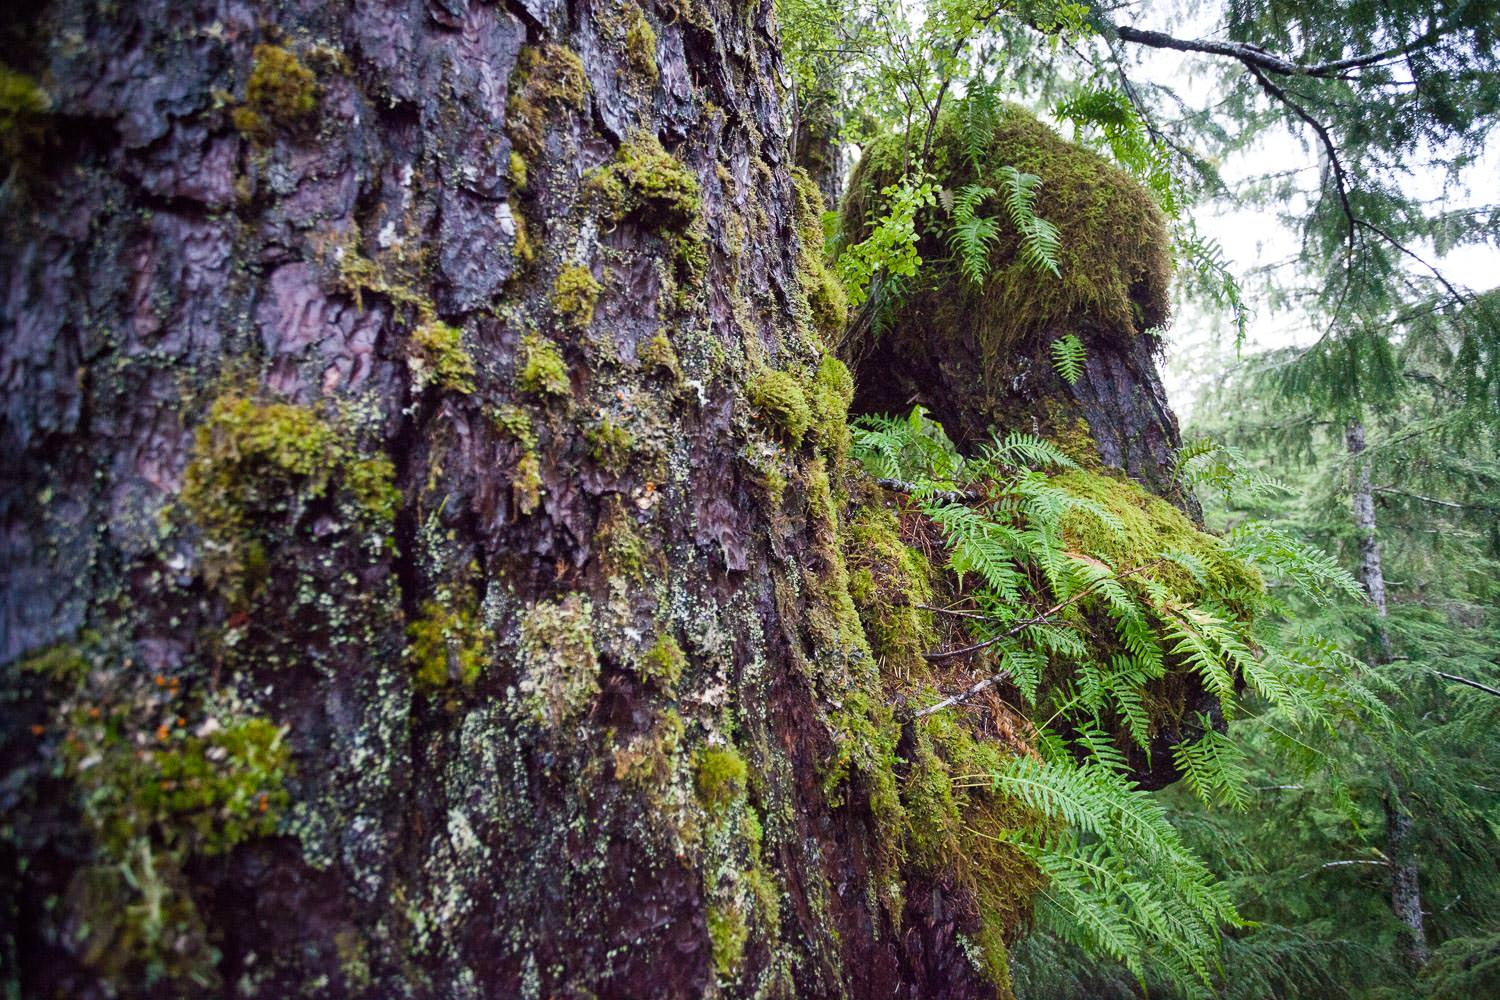 Suspended soil and canopy gardens are unique to old-growth forests.